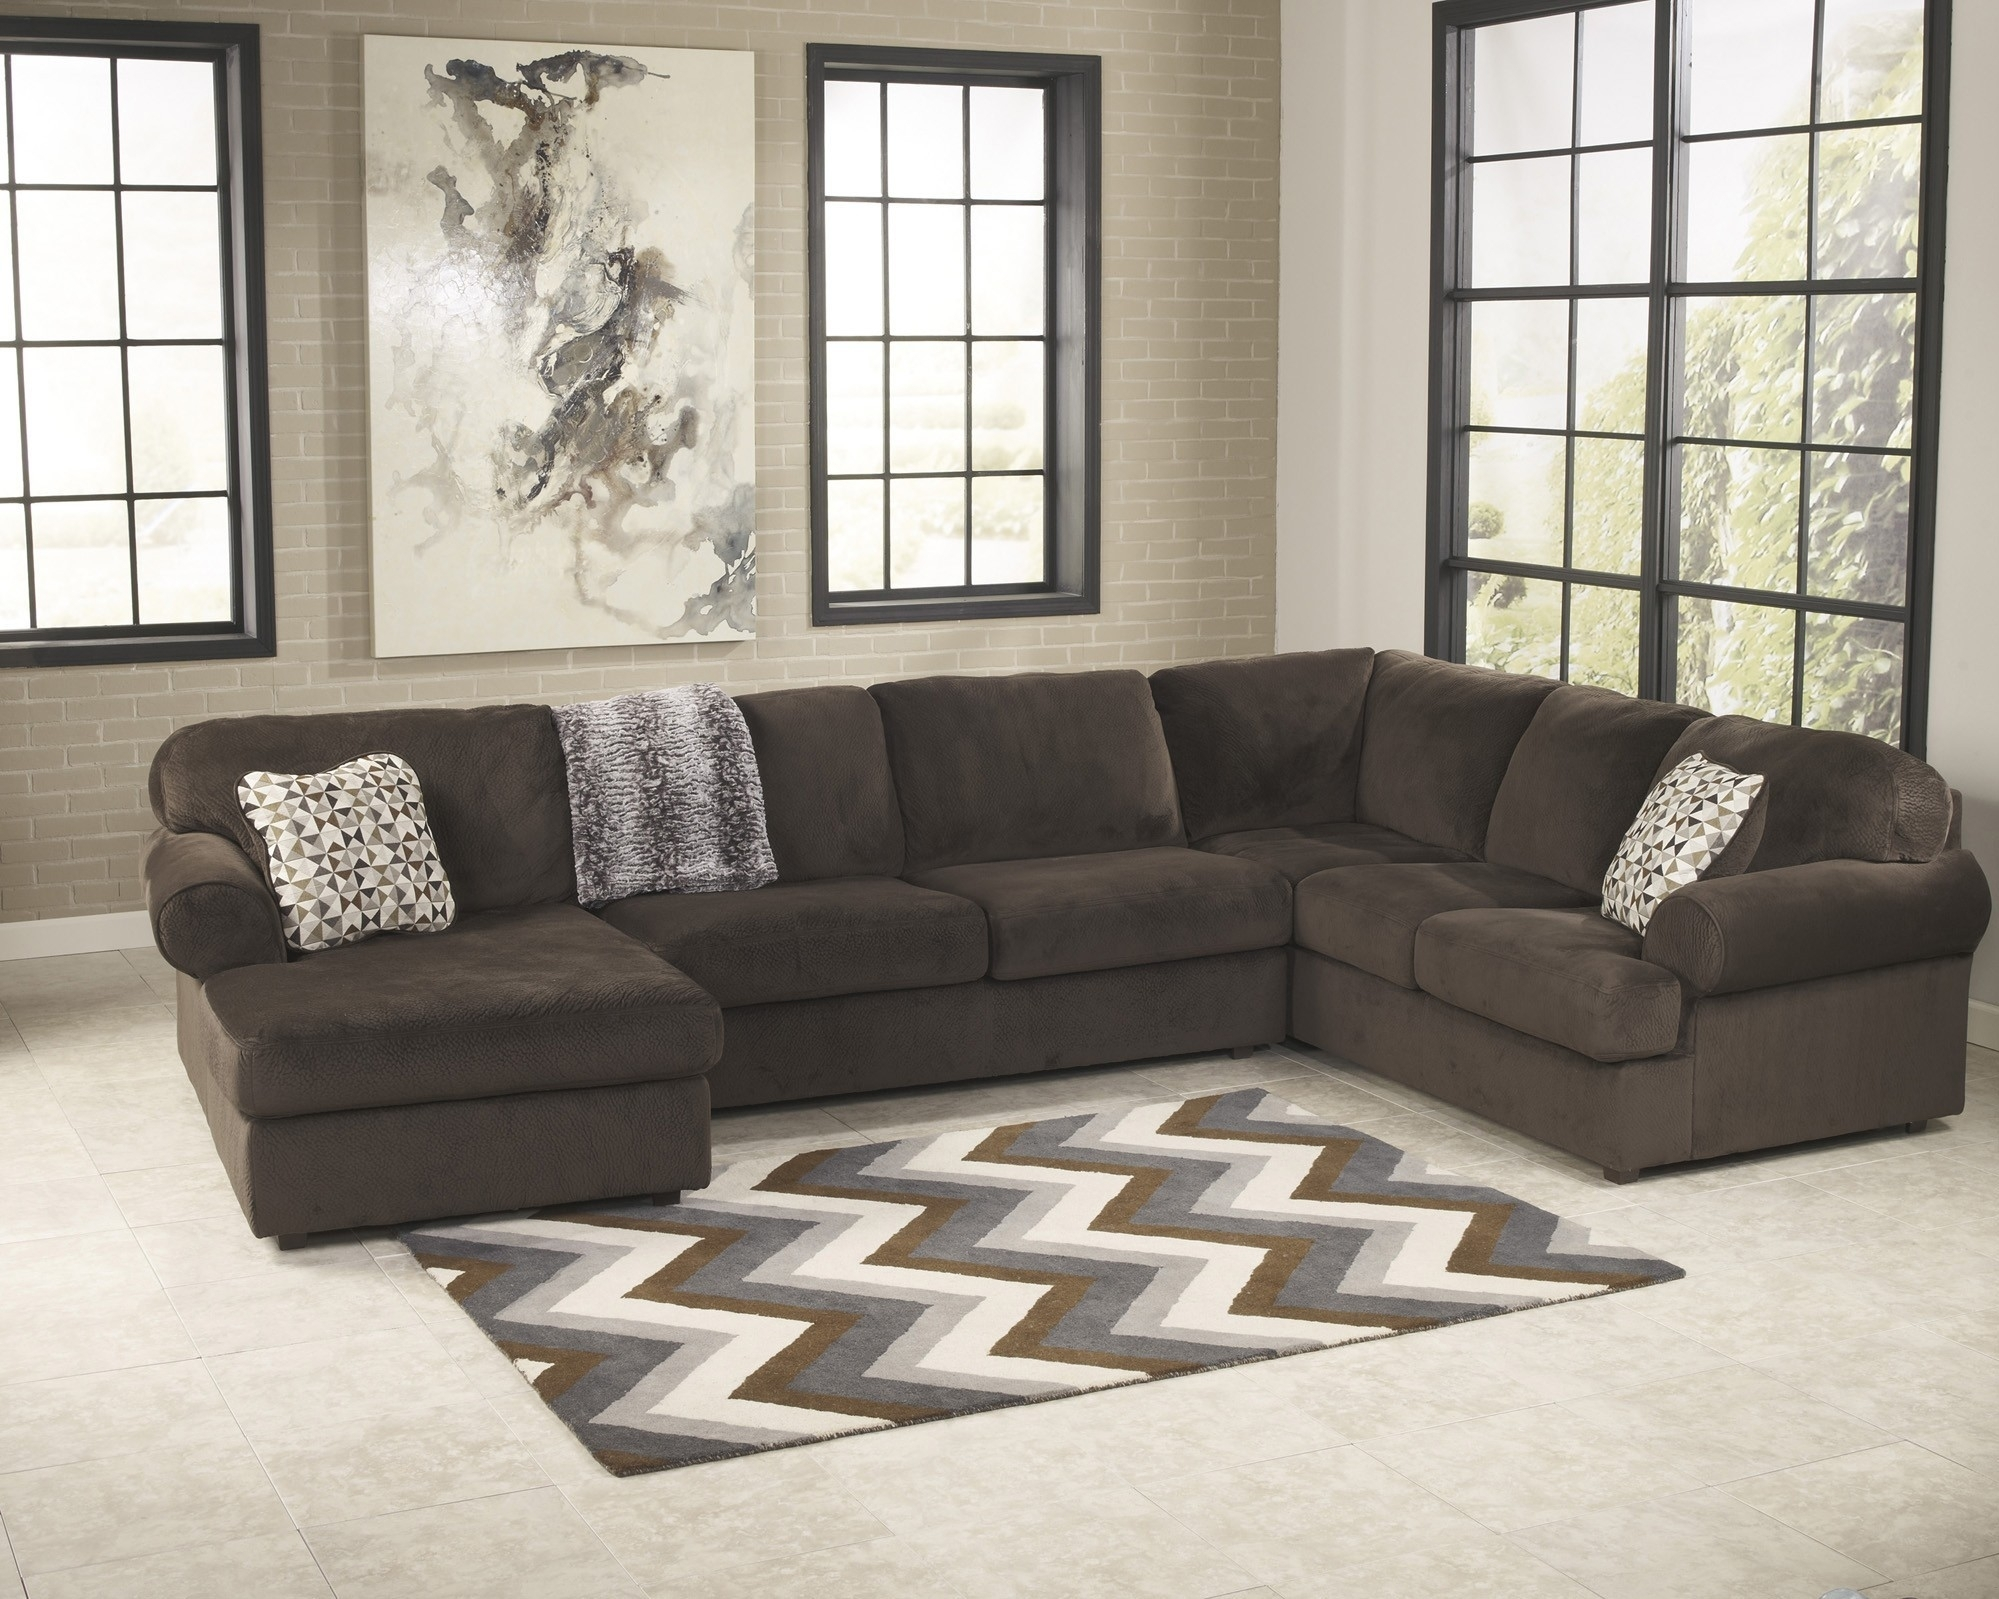 Elegant 3 Piece Sectional Sofa With Chaise   Buildsimplehome Pertaining To Haven 3 Piece Sectionals (Photo 32 of 32)